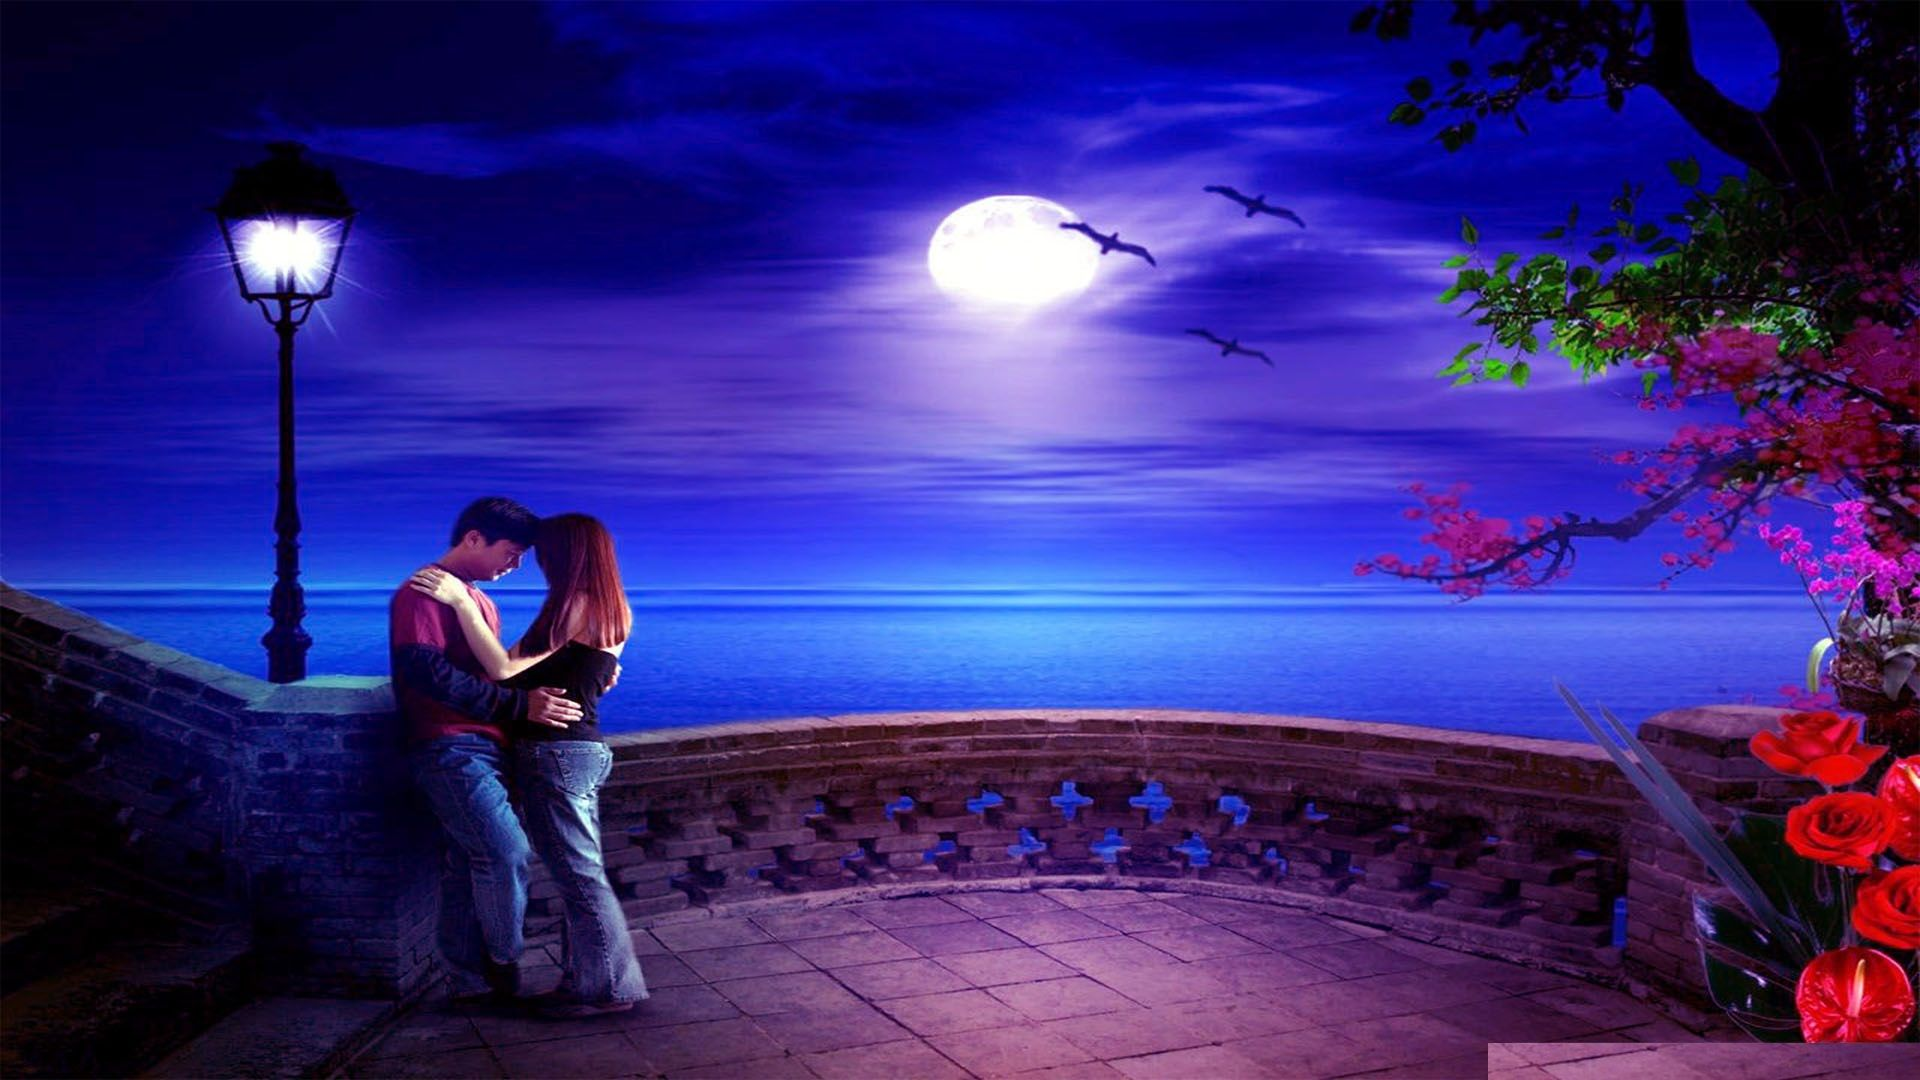 Latest Love Wallpaper Hd For Mobile : Romantic Love HD Wallpapers : Find best latest Romantic Love HD Wallpapers for your Pc desktop ...